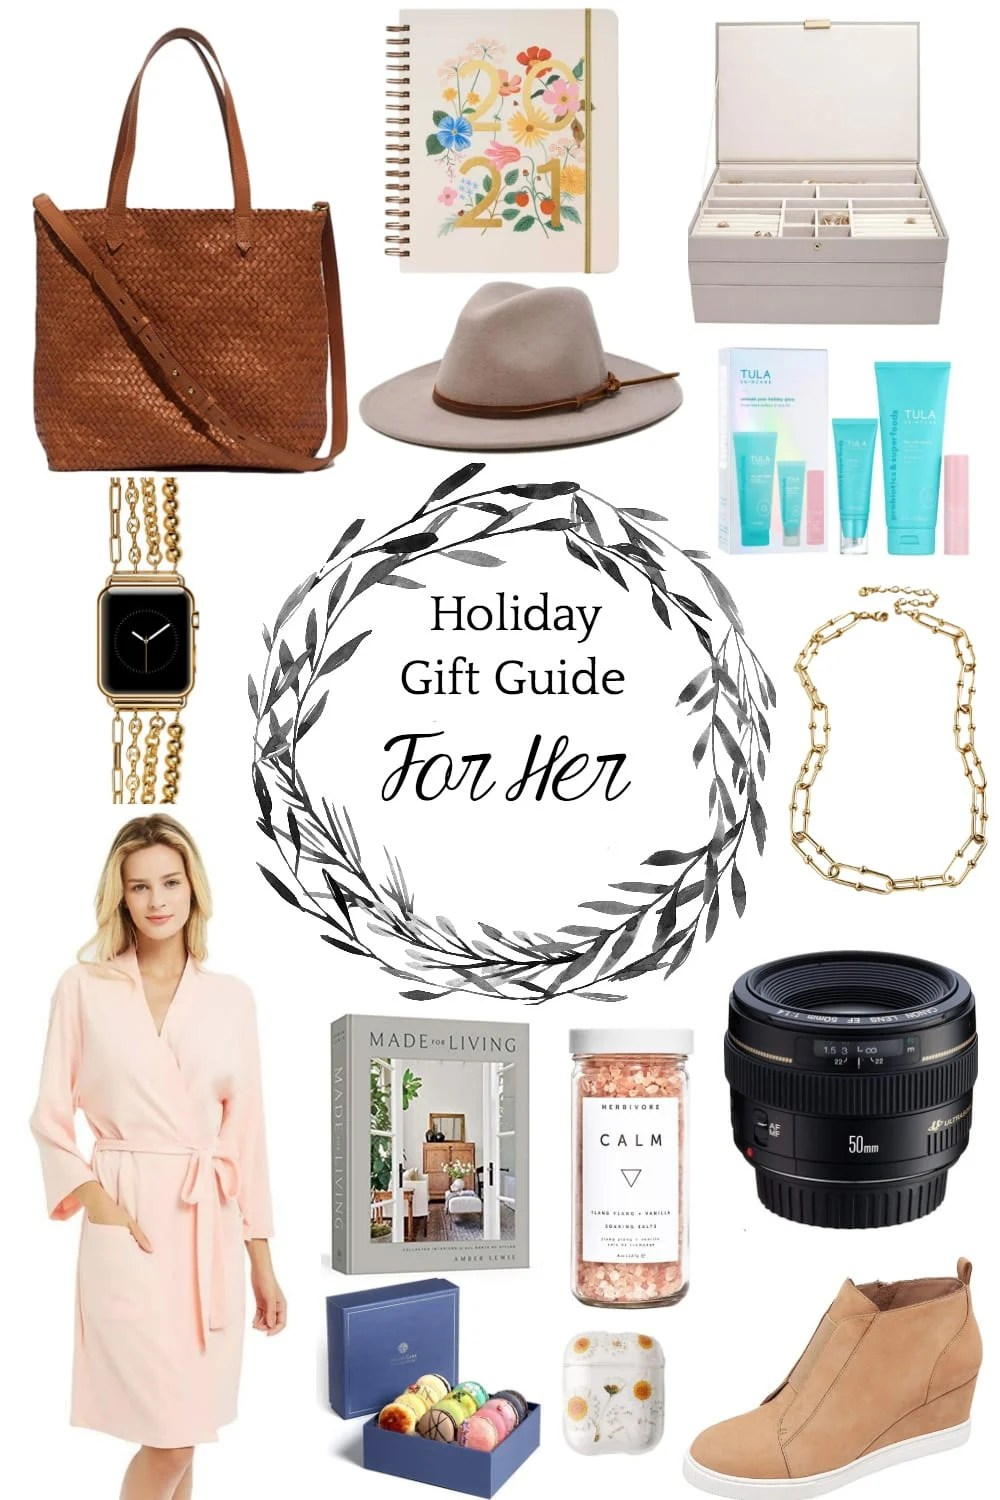 Christmas Gift Ideas for Women | The perfect gift ideas for women - for a mom, a grandmother, a neighbor, a daughter, a sister, or a friend.